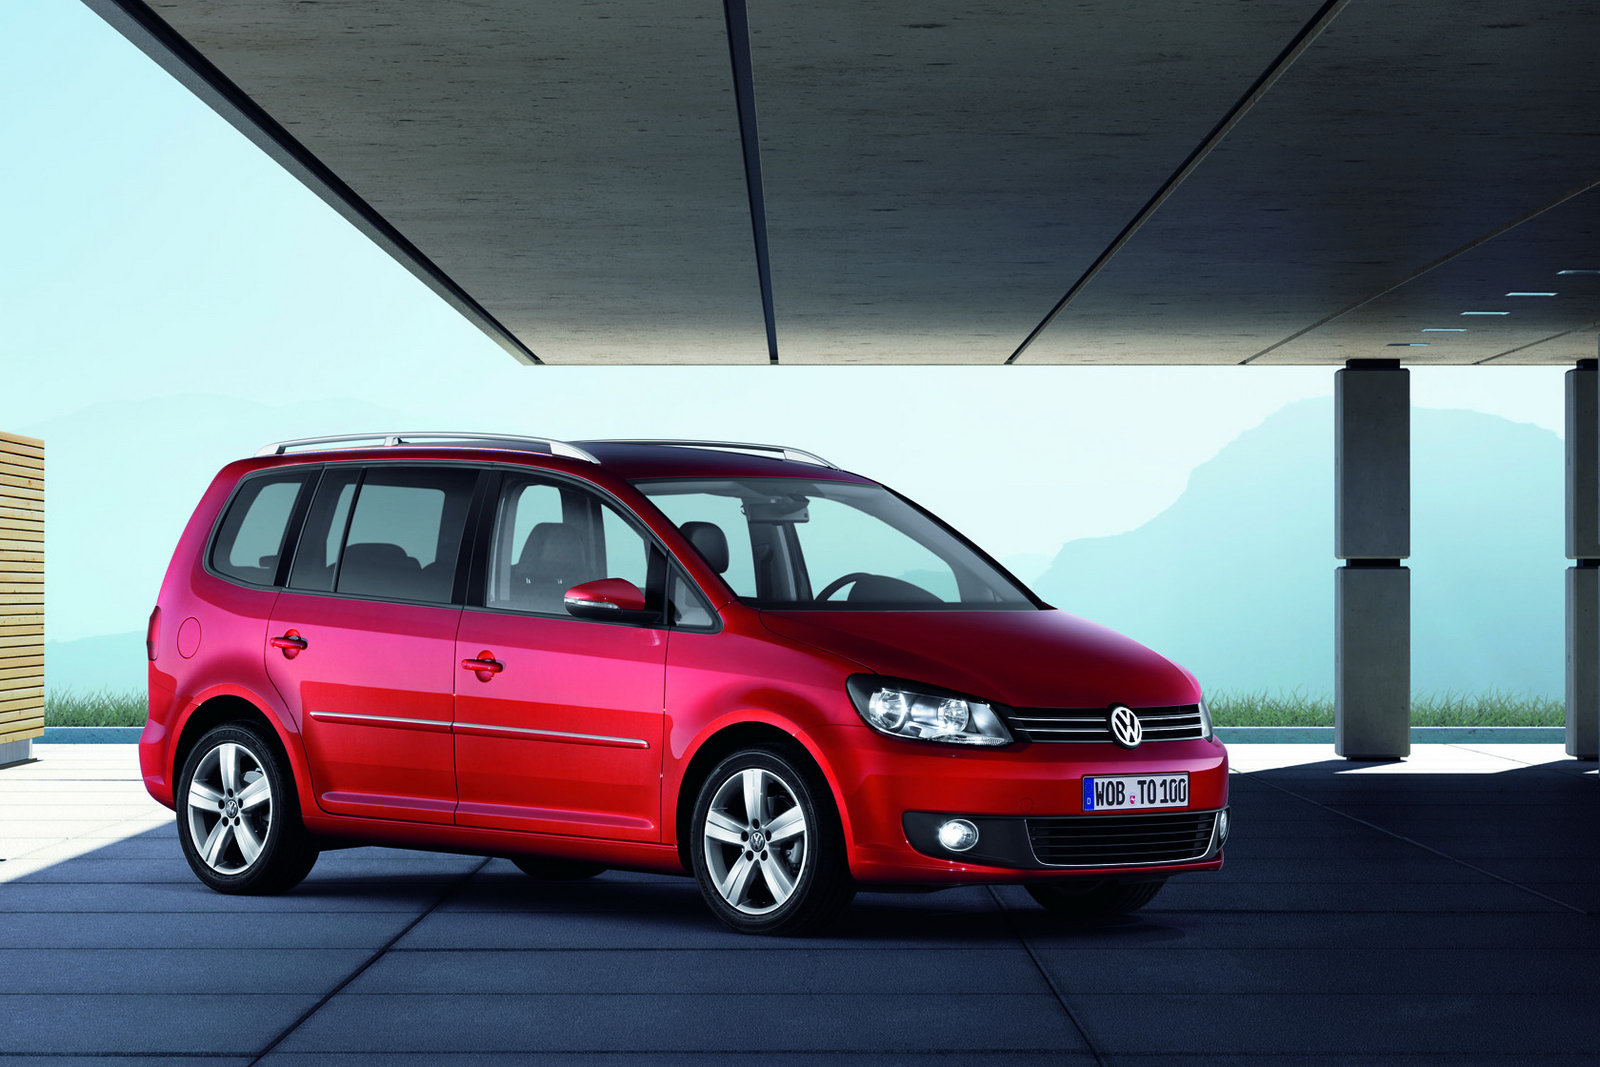 2011 volkswagen touran 7 seater mpv receives second mid life facelift carscoops. Black Bedroom Furniture Sets. Home Design Ideas